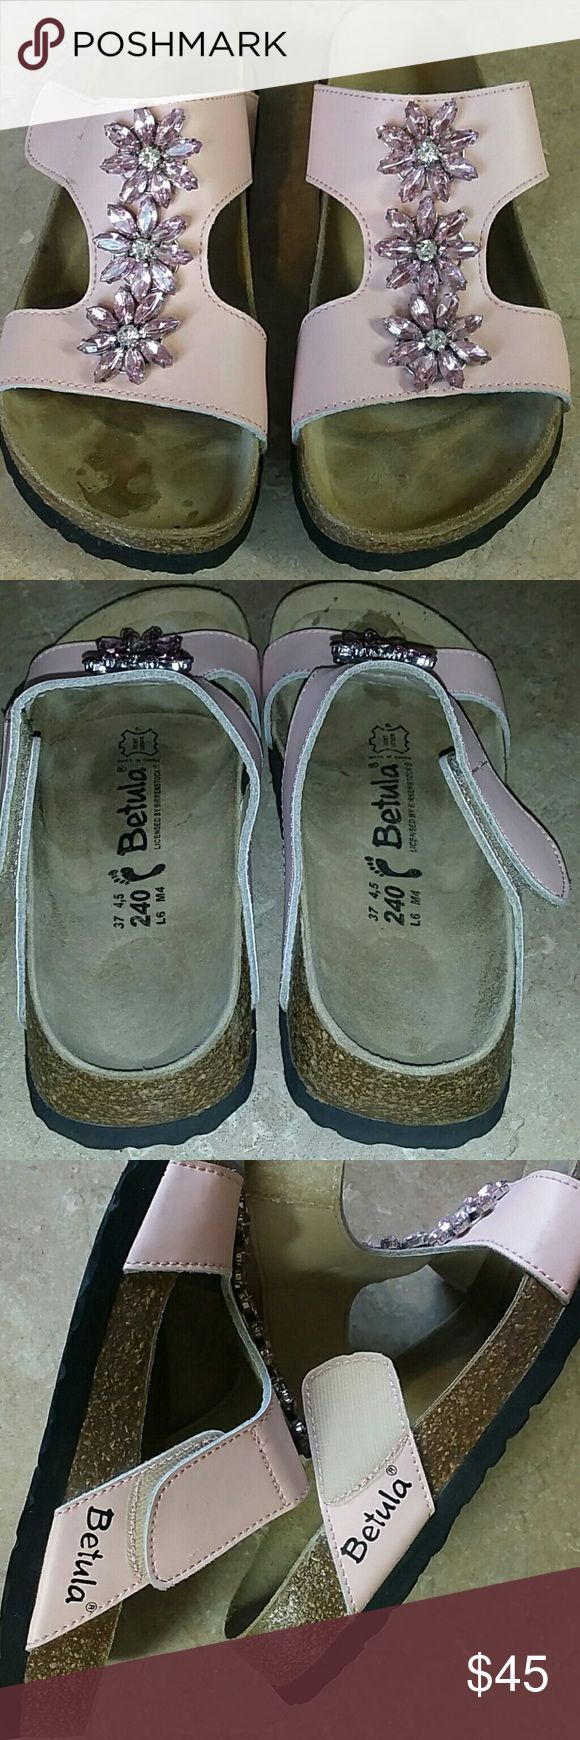 Birkenstock BETULA sandals Pink leather with rhinestone floral design. Velcro closure on the side. Used but like new. Please see photos. Im a size 7 but this fit just right! Size 6 USA. Birkenstock Shoes Sandals